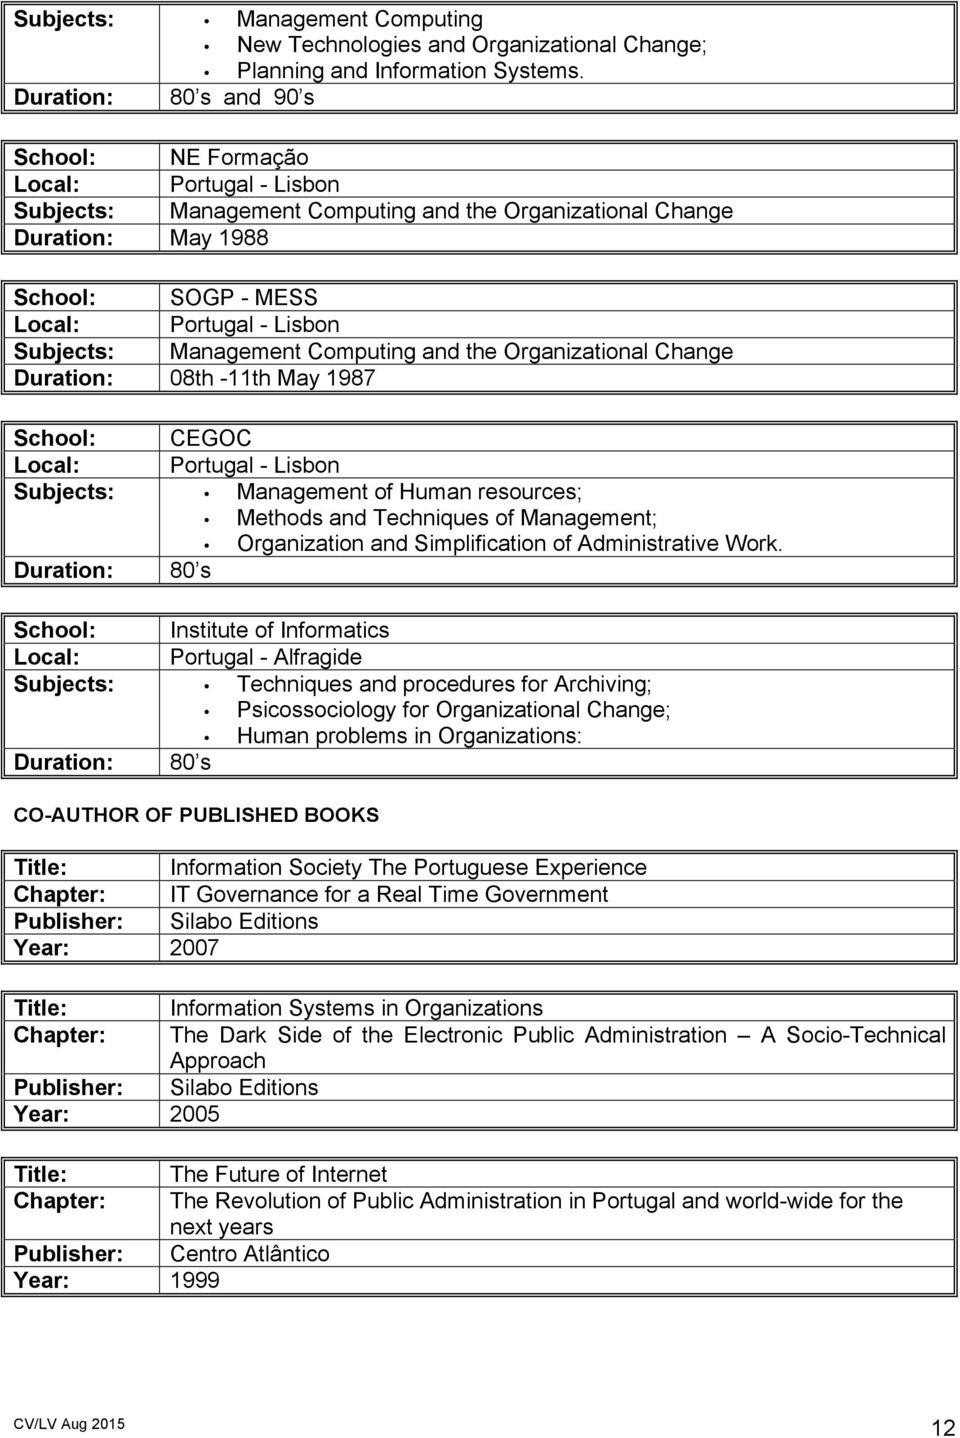 Subjects: Management Computing and the Organizational Change Duration: 08th -11th May 1987 School: CEGOC Local: Portugal - Lisbon Subjects: Management of Human resources; Methods and Techniques of